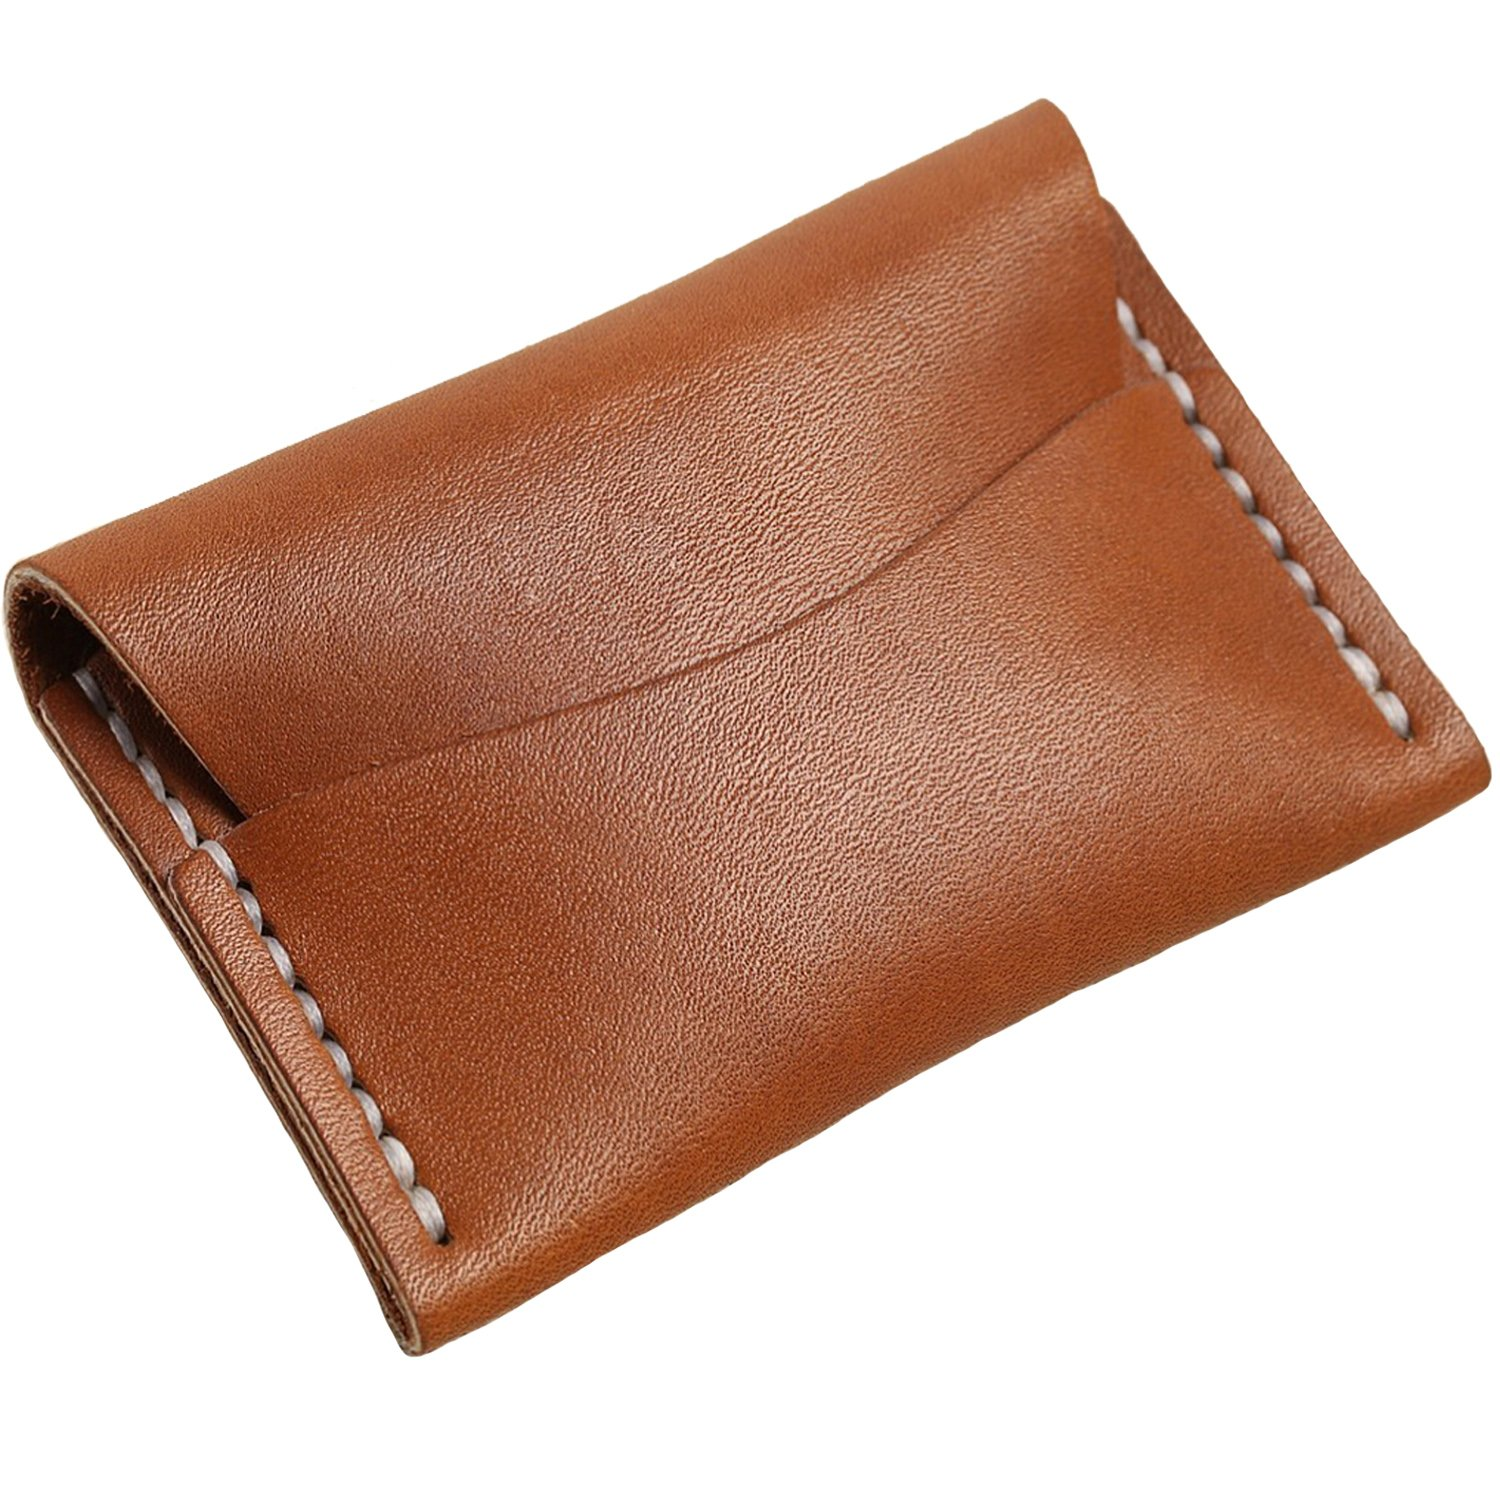 best service 77eff f565d Faler Brand Minimalist Card Case - Minimalist Horween Leather Fold Credit  Card Wallet (Tan Latigo Horween)